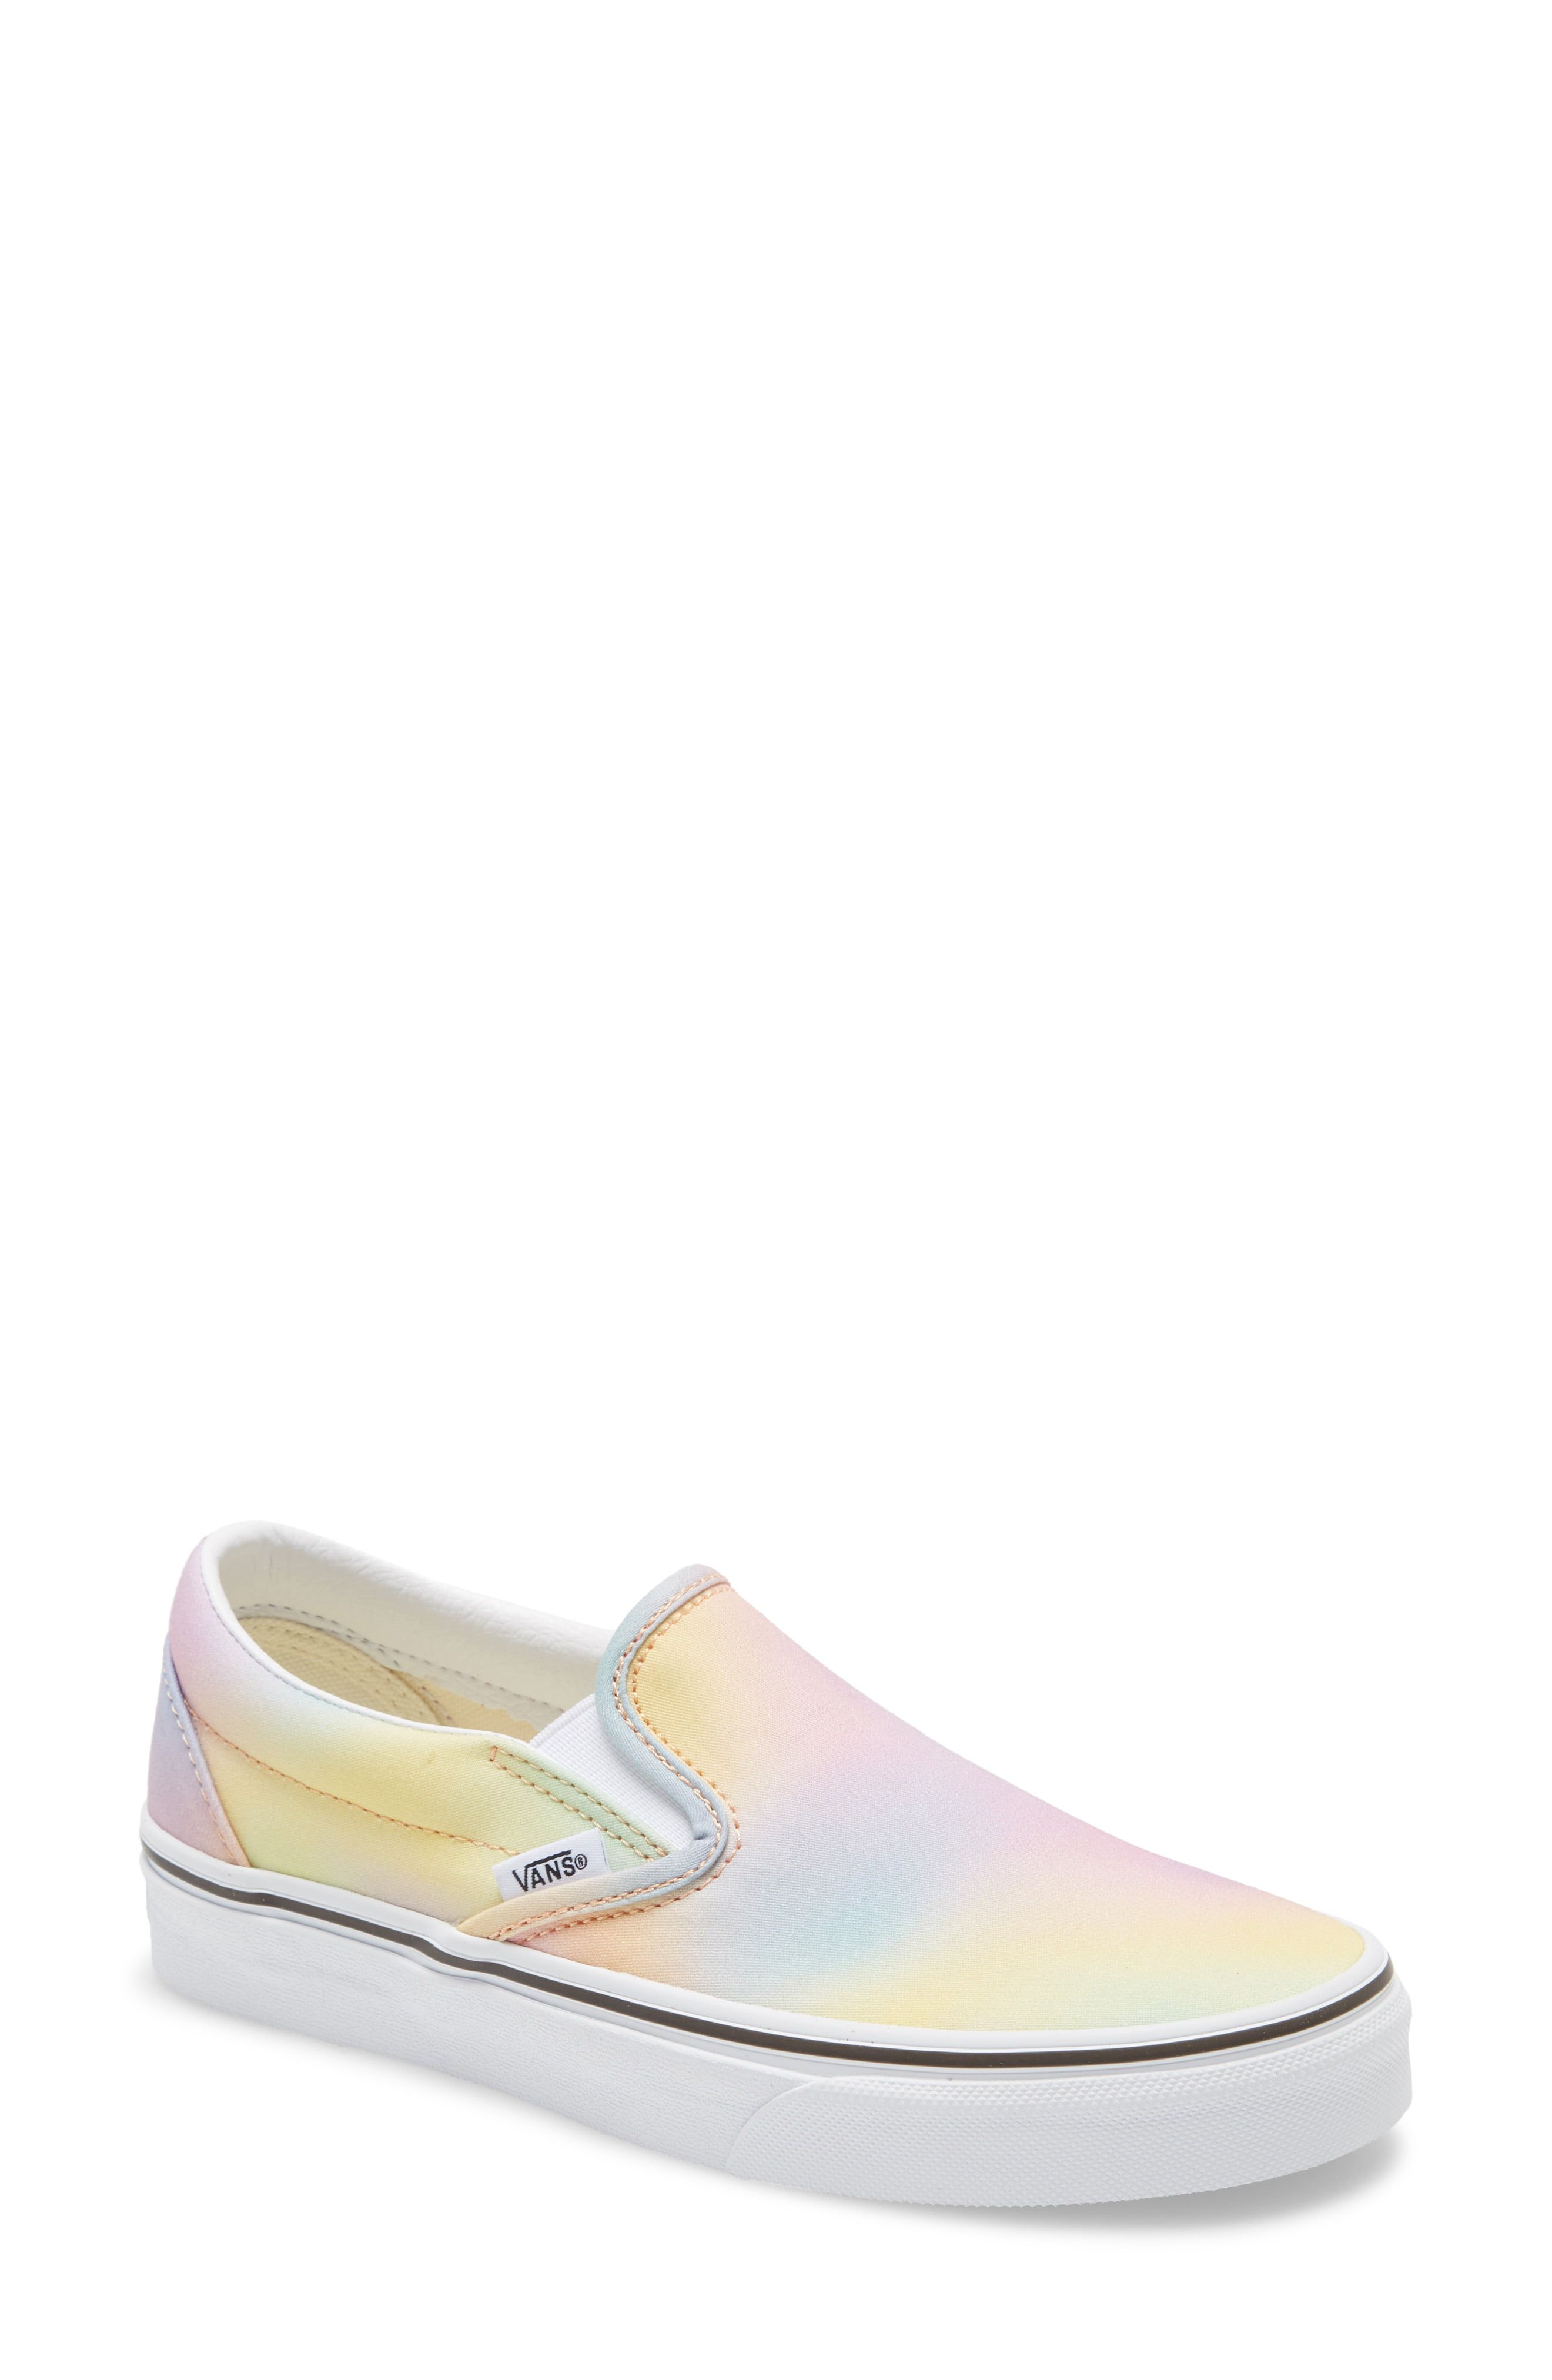 Cute Slip on Shoes for Women 2020